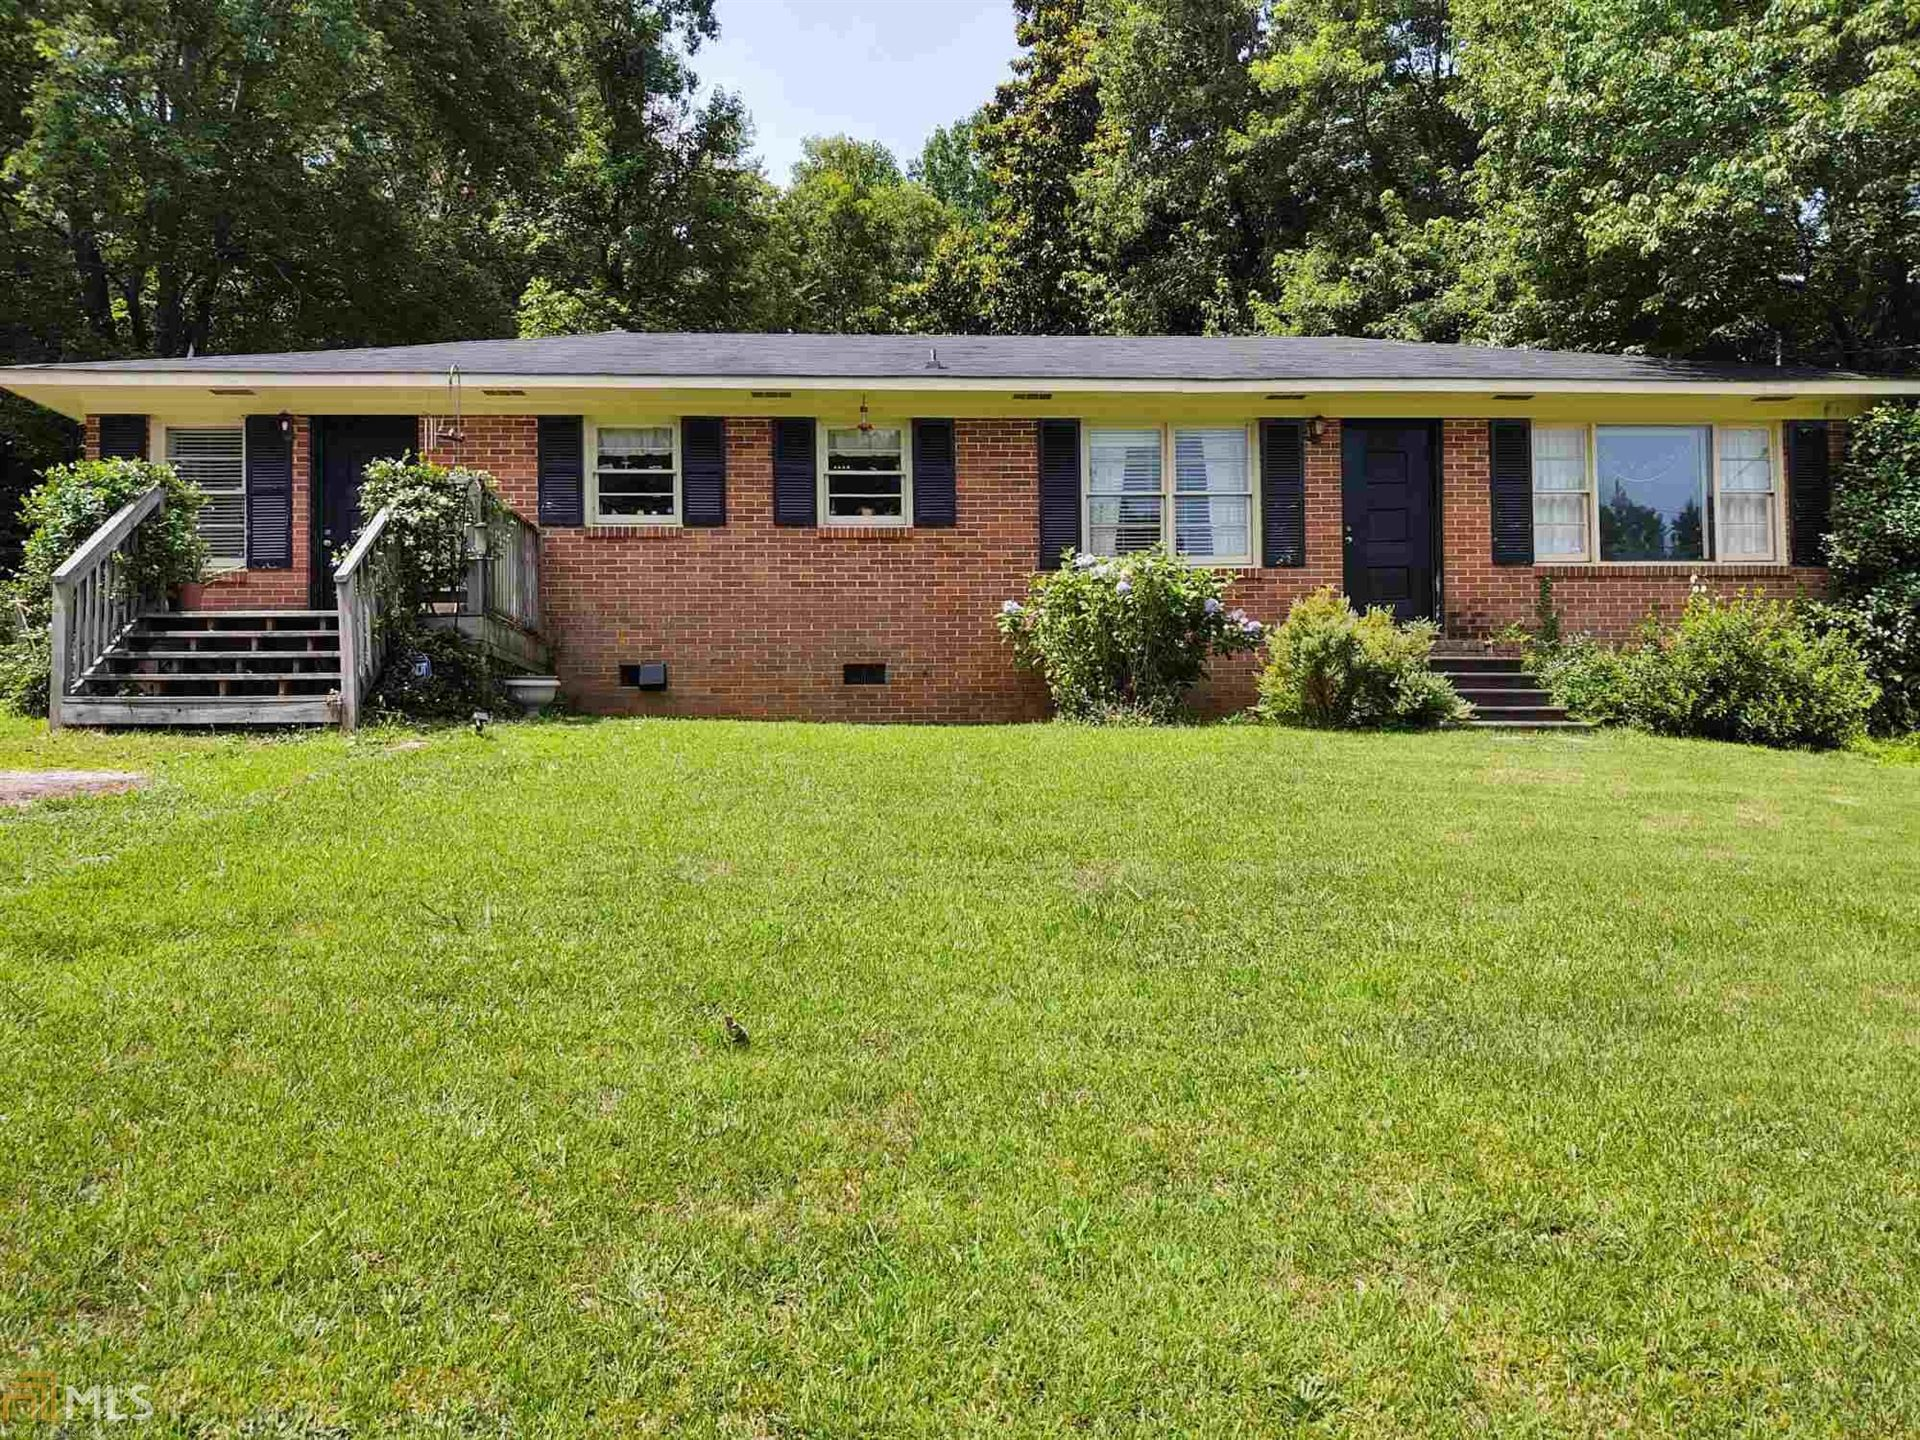 813 Forest Heights Dr, Athens, GA 30606 - #: 8811958